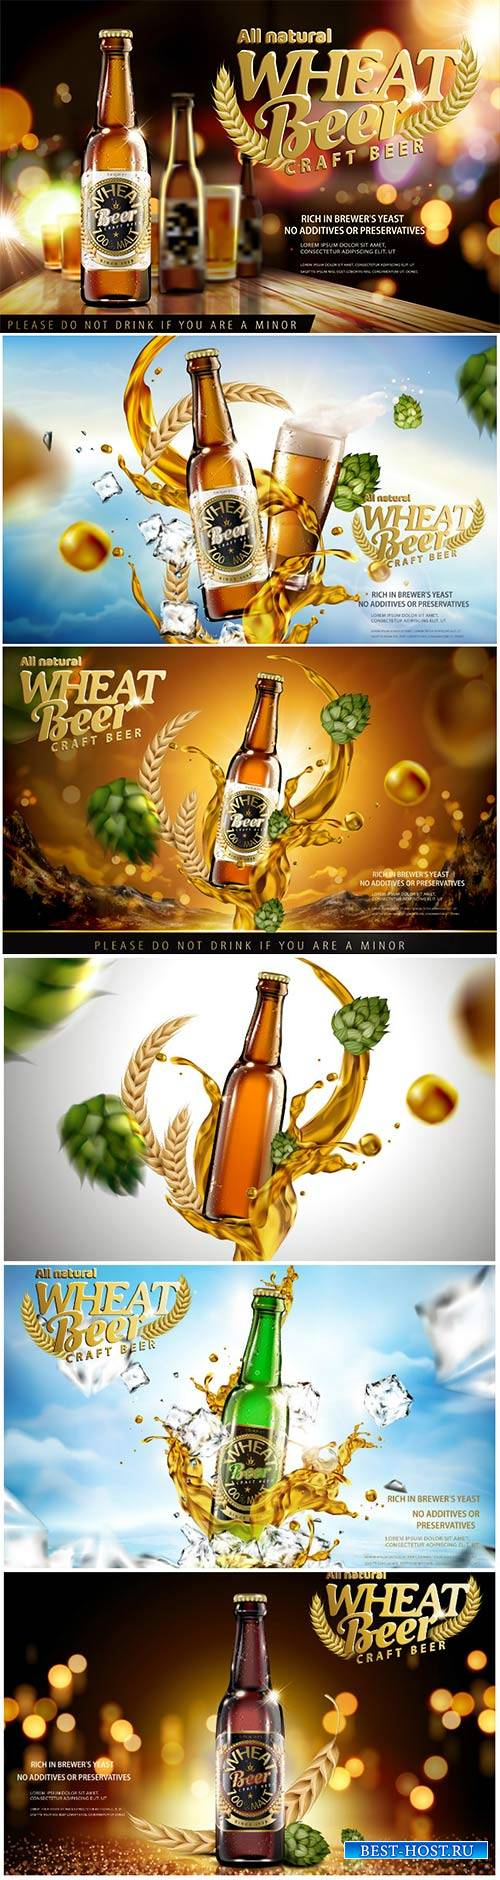 Beer vector poster ads on bokeh night bar background in 3d illustration